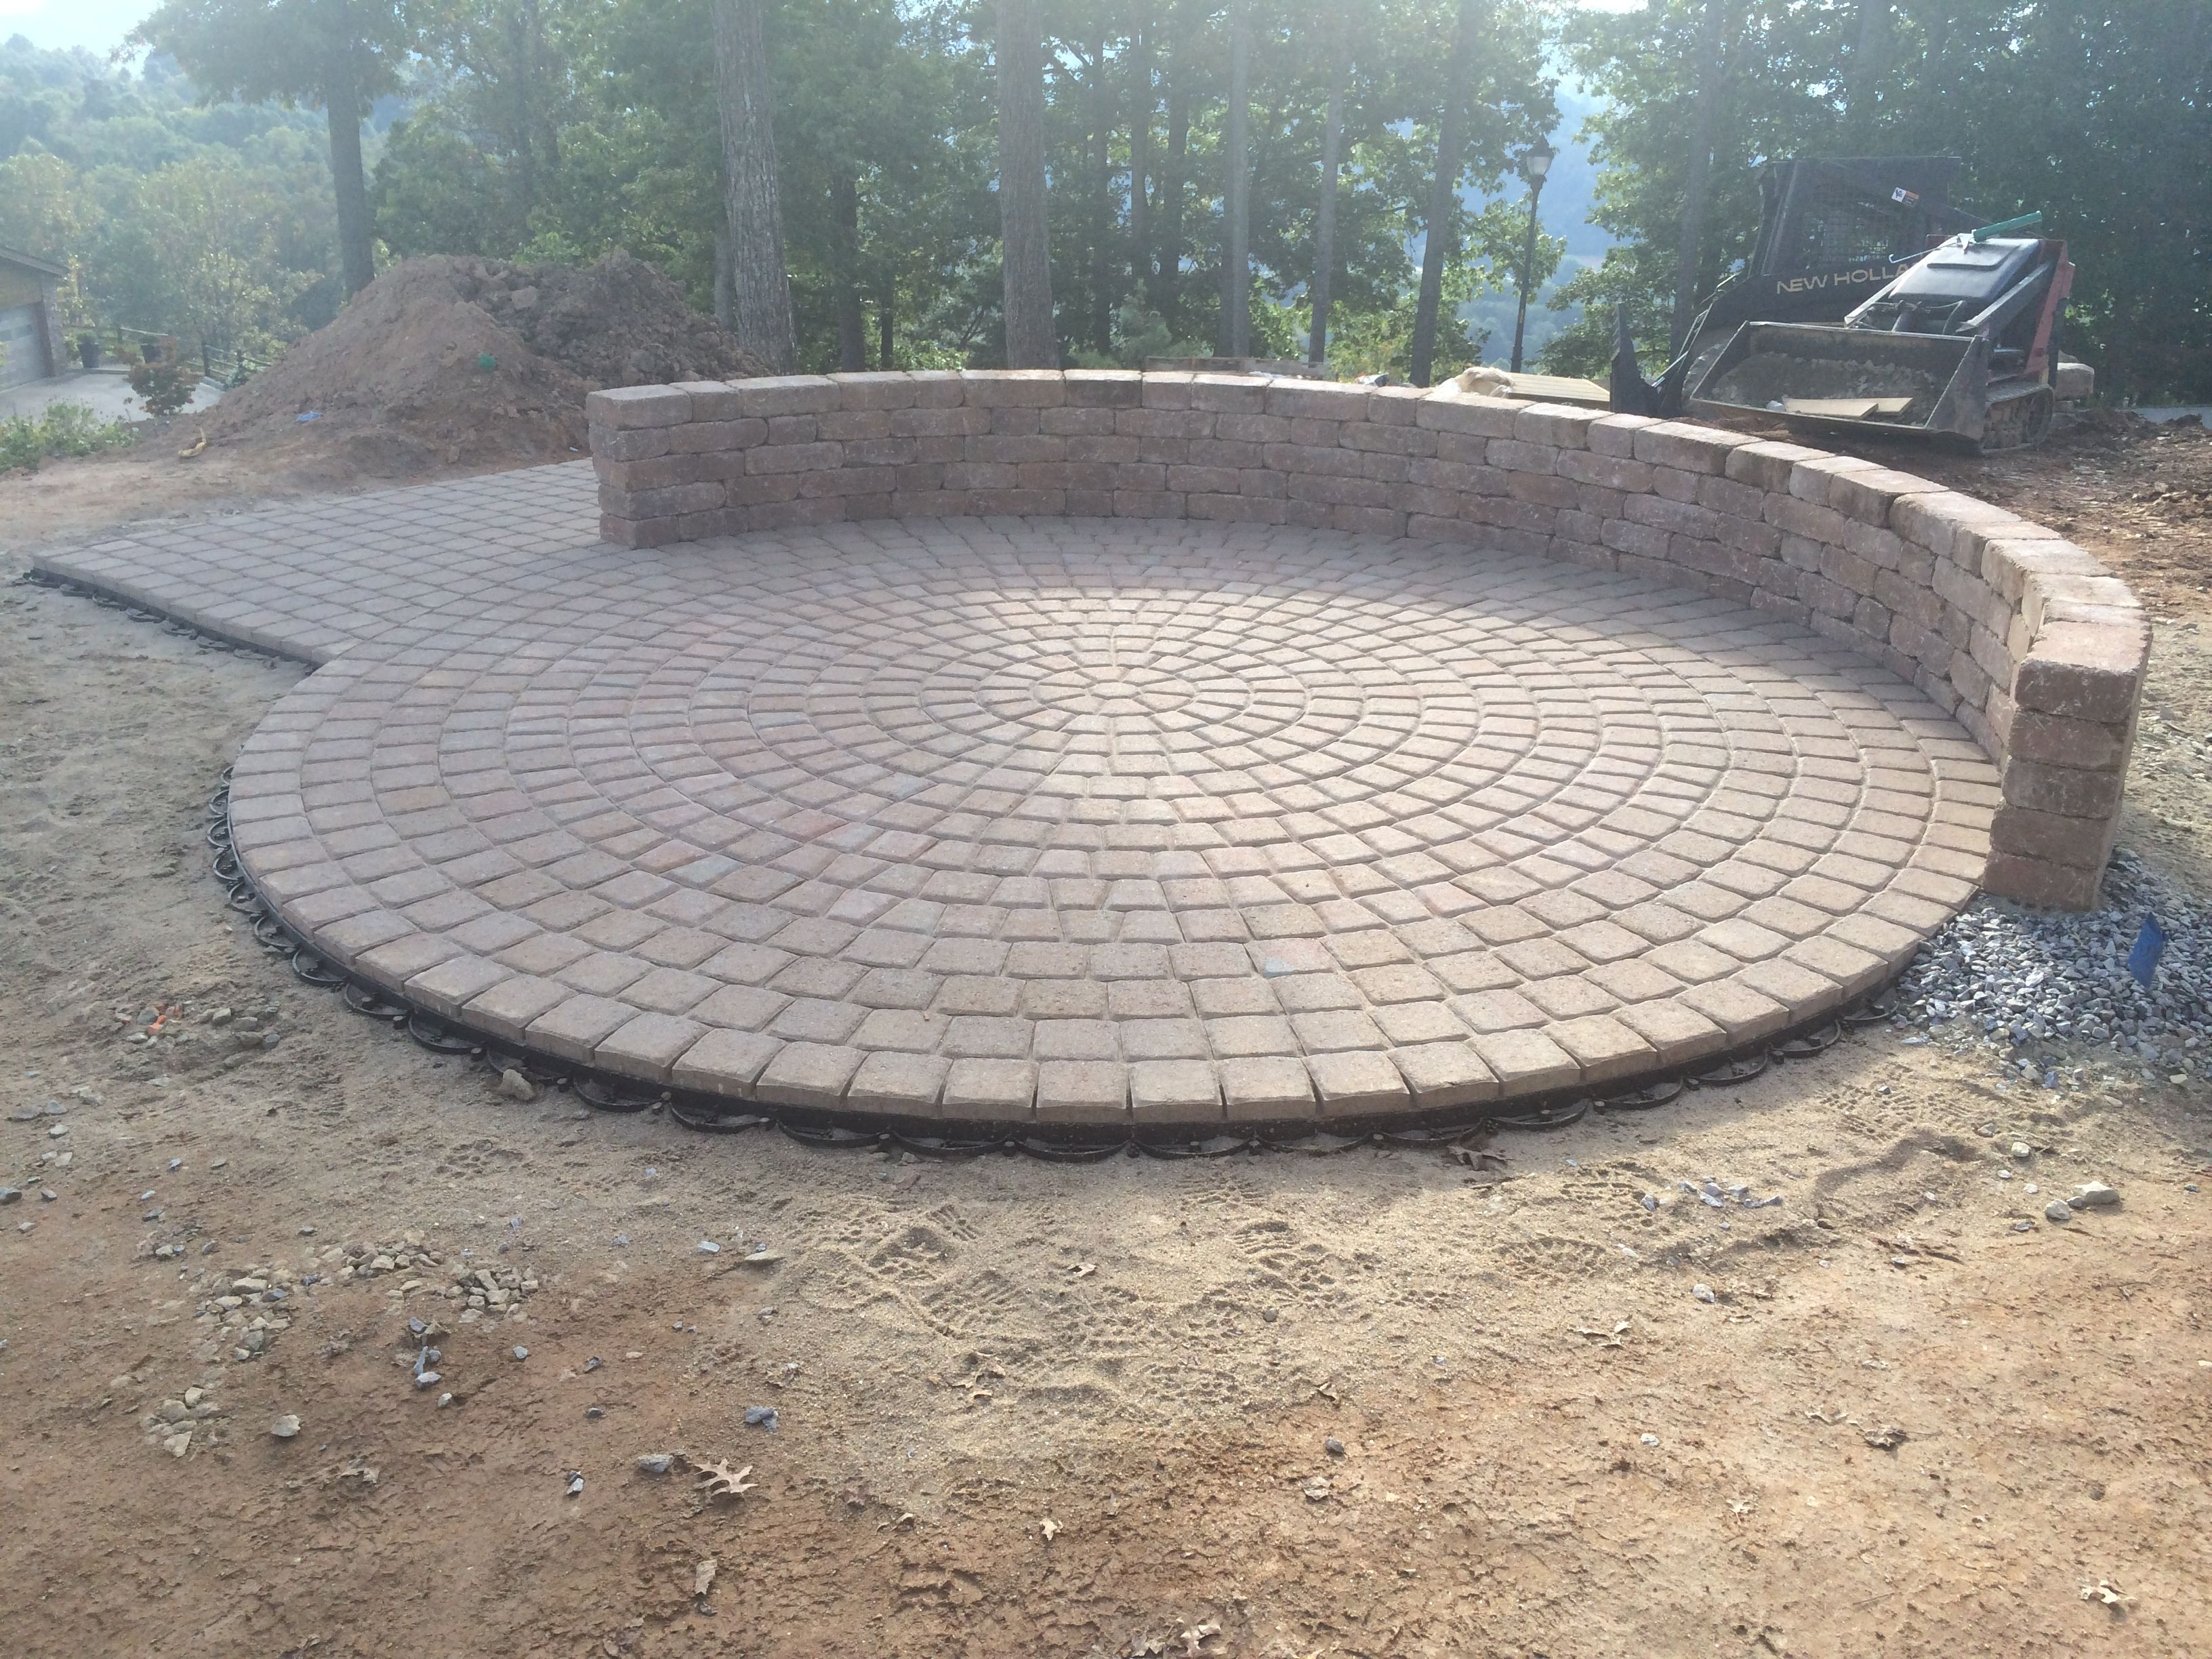 A Circle Shaped Concrete Paver Patio, With Attached Semi Circular Seating  Wall. By